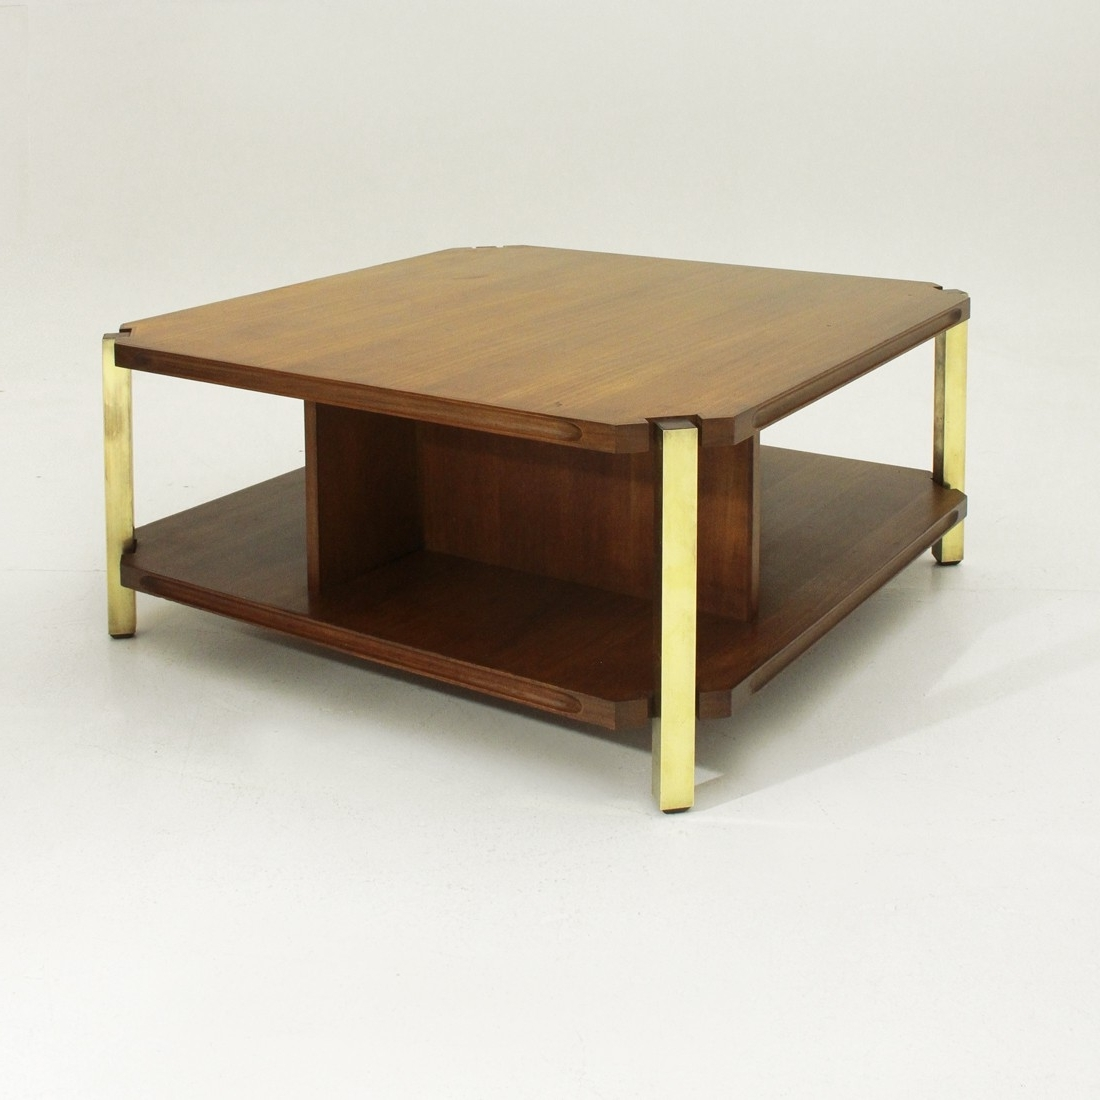 Most Up To Date Rectangular Coffee Tables With Brass Legs With Italian Teak Coffee Table With Brass Legs – 1960s – Design Market (View 19 of 20)